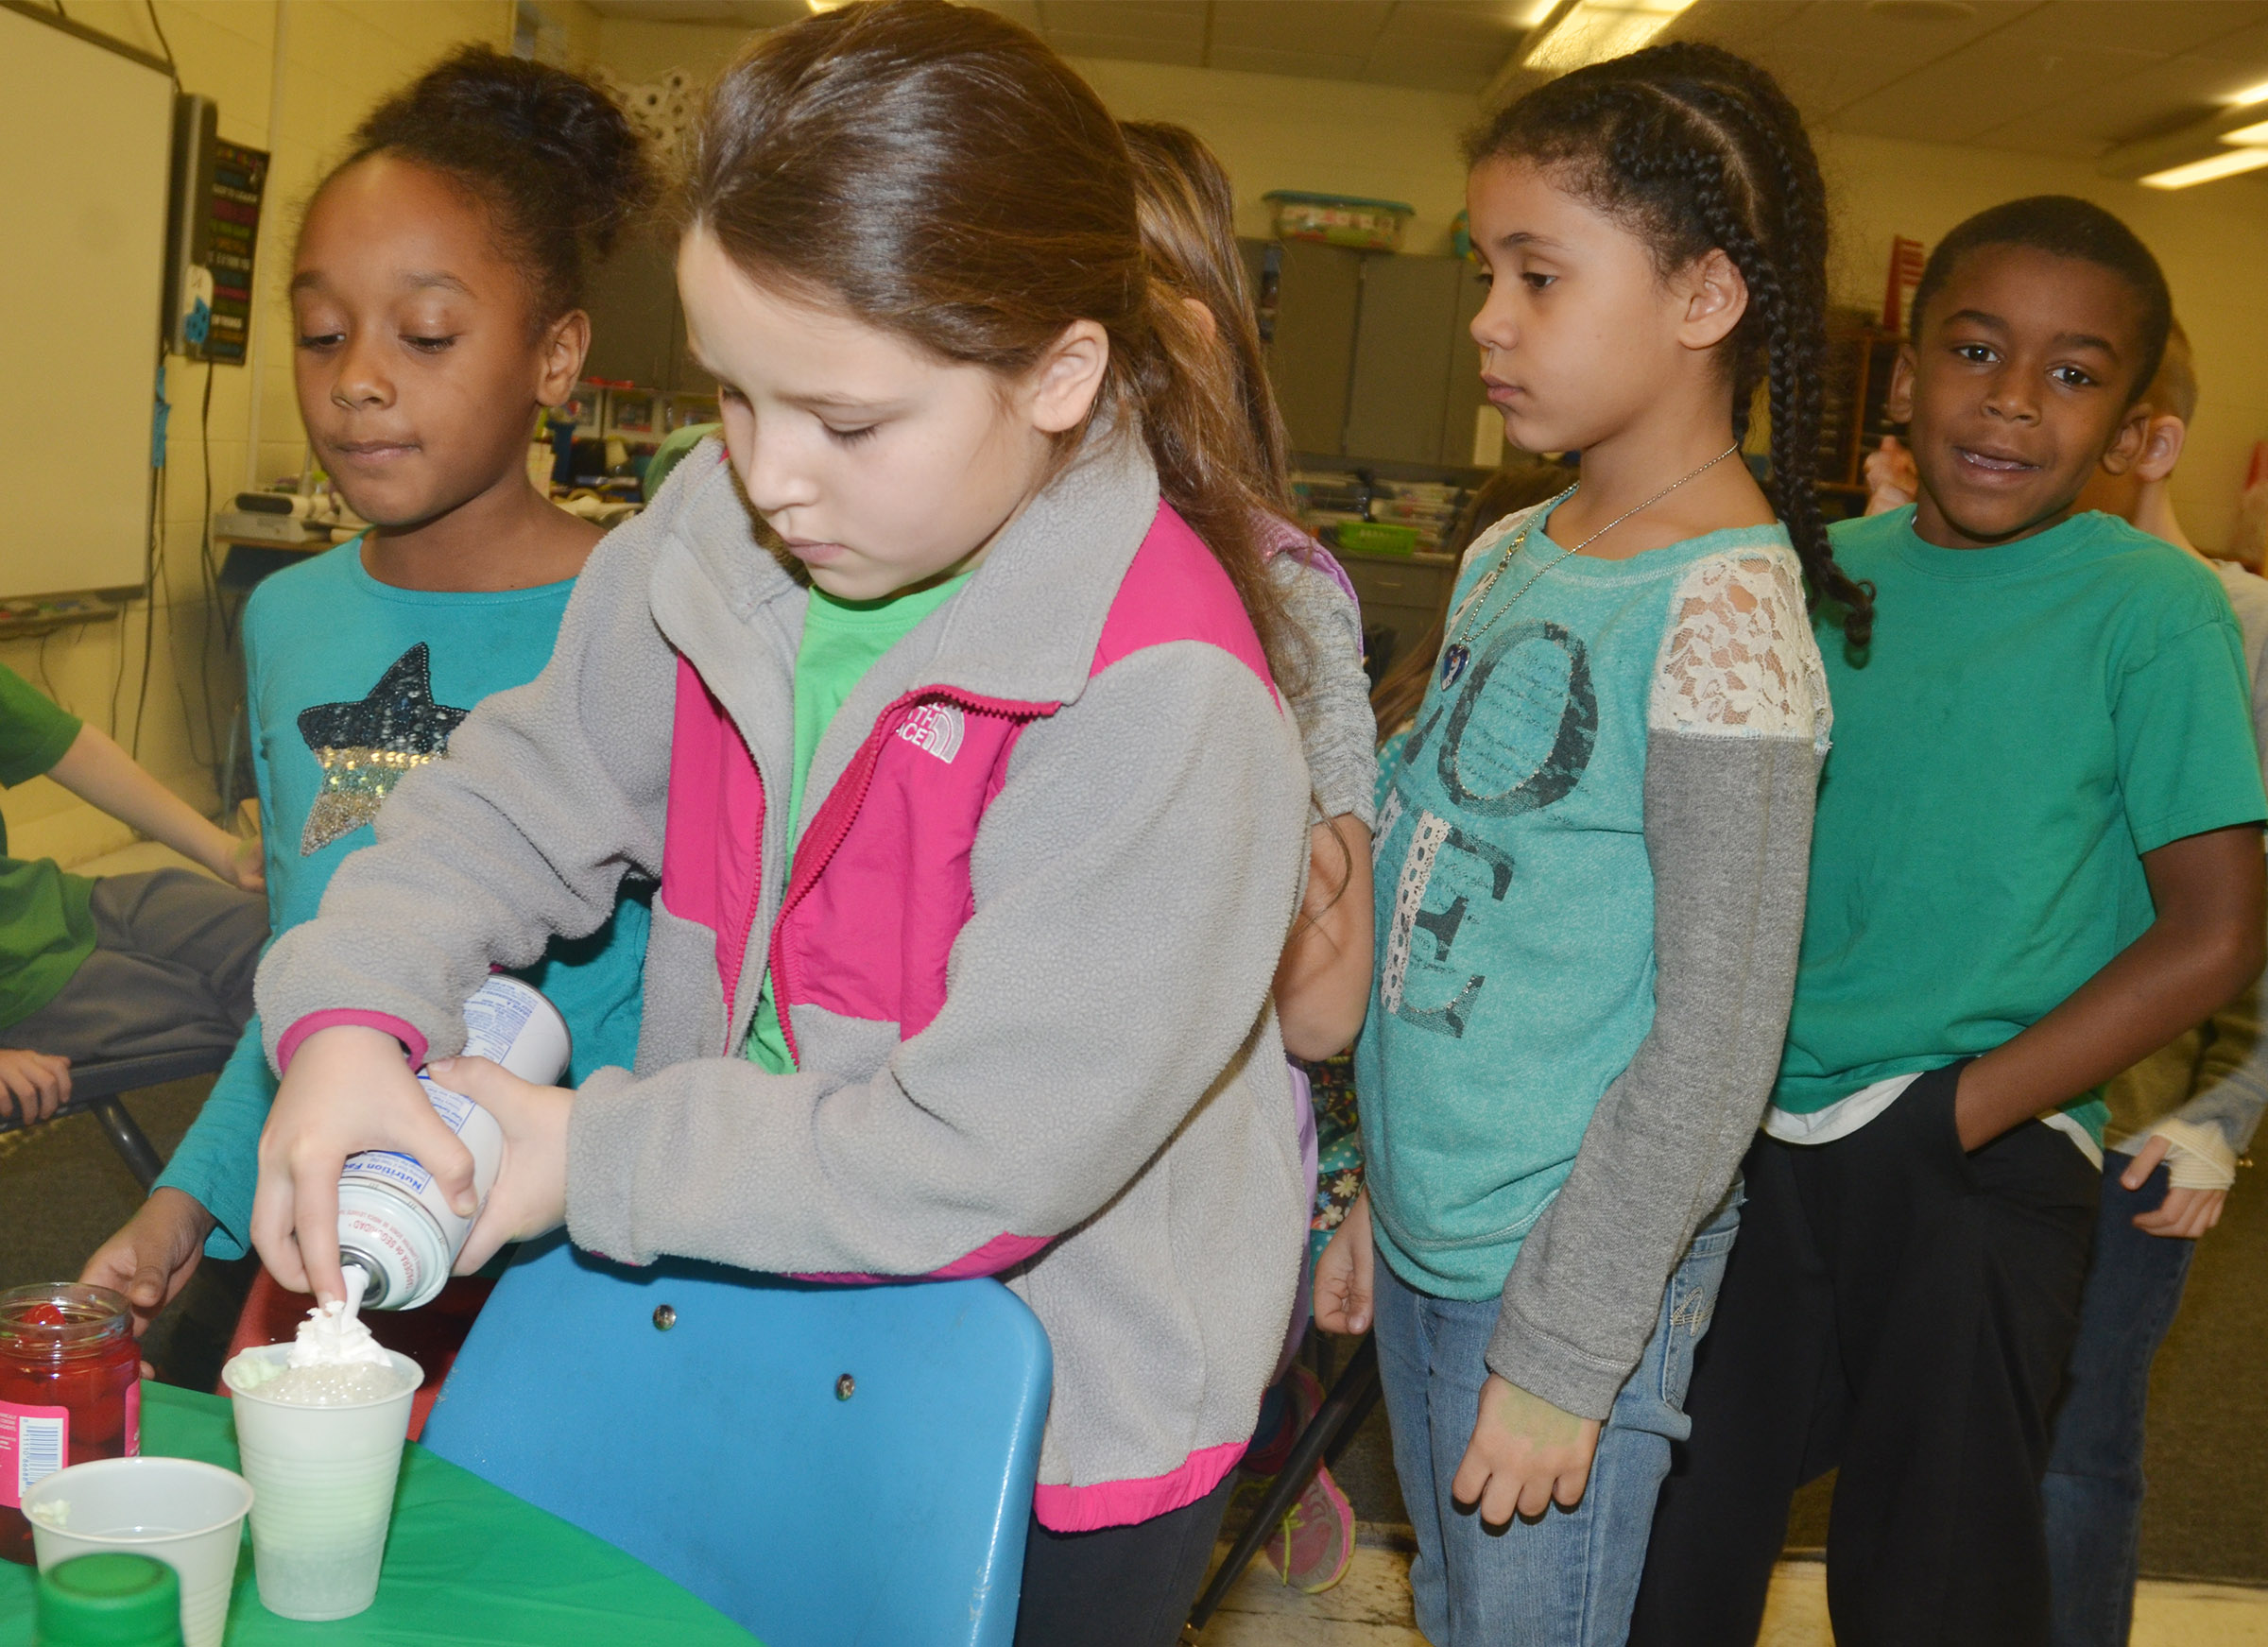 CES second-grader Keely Rakes adds whipped cream to her leprechaun float as her classmates wait to make theirs.